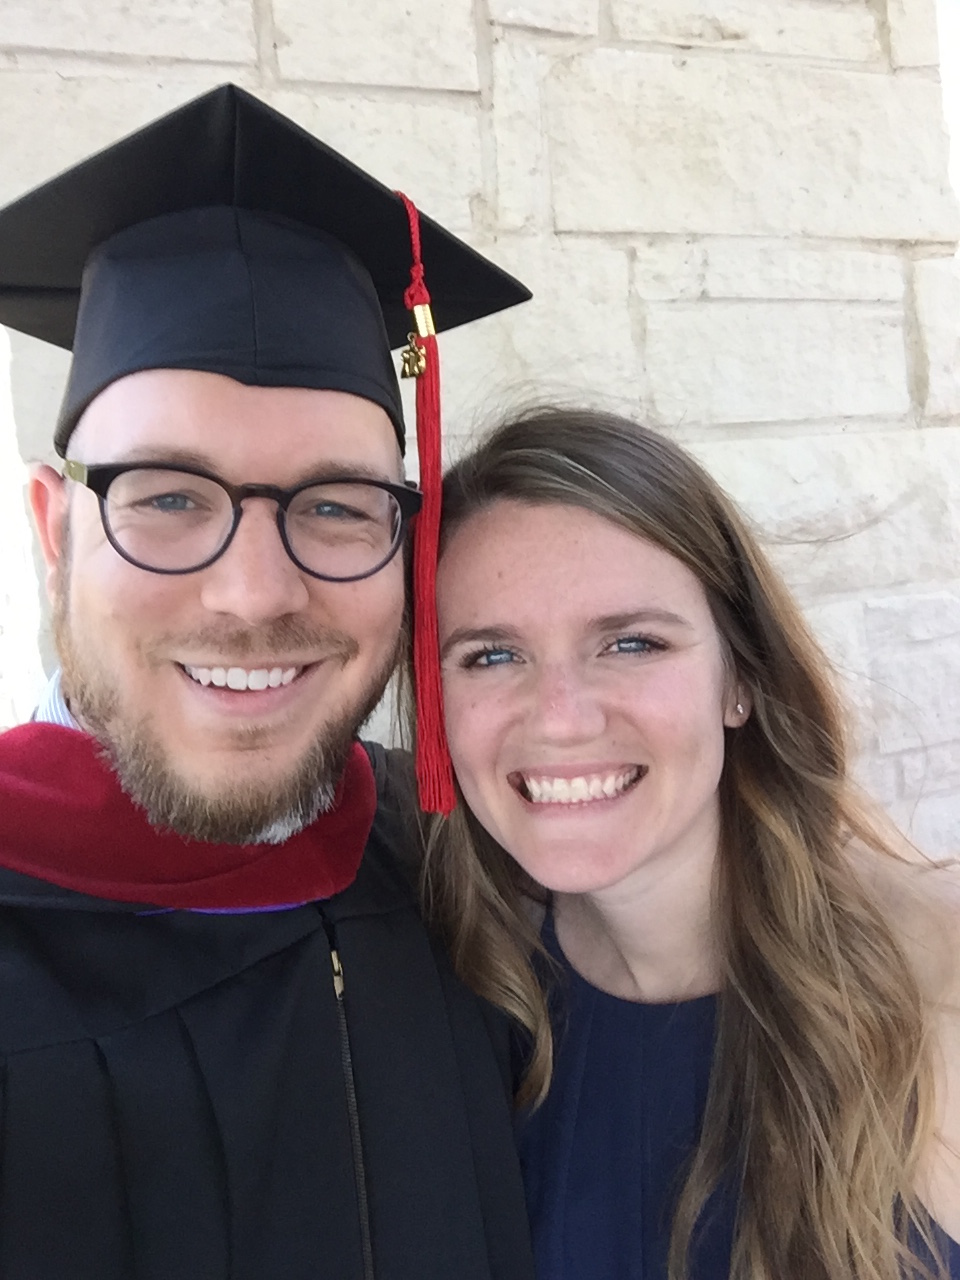 He graduated! And I couldn't have been happier for him or for me. ;)